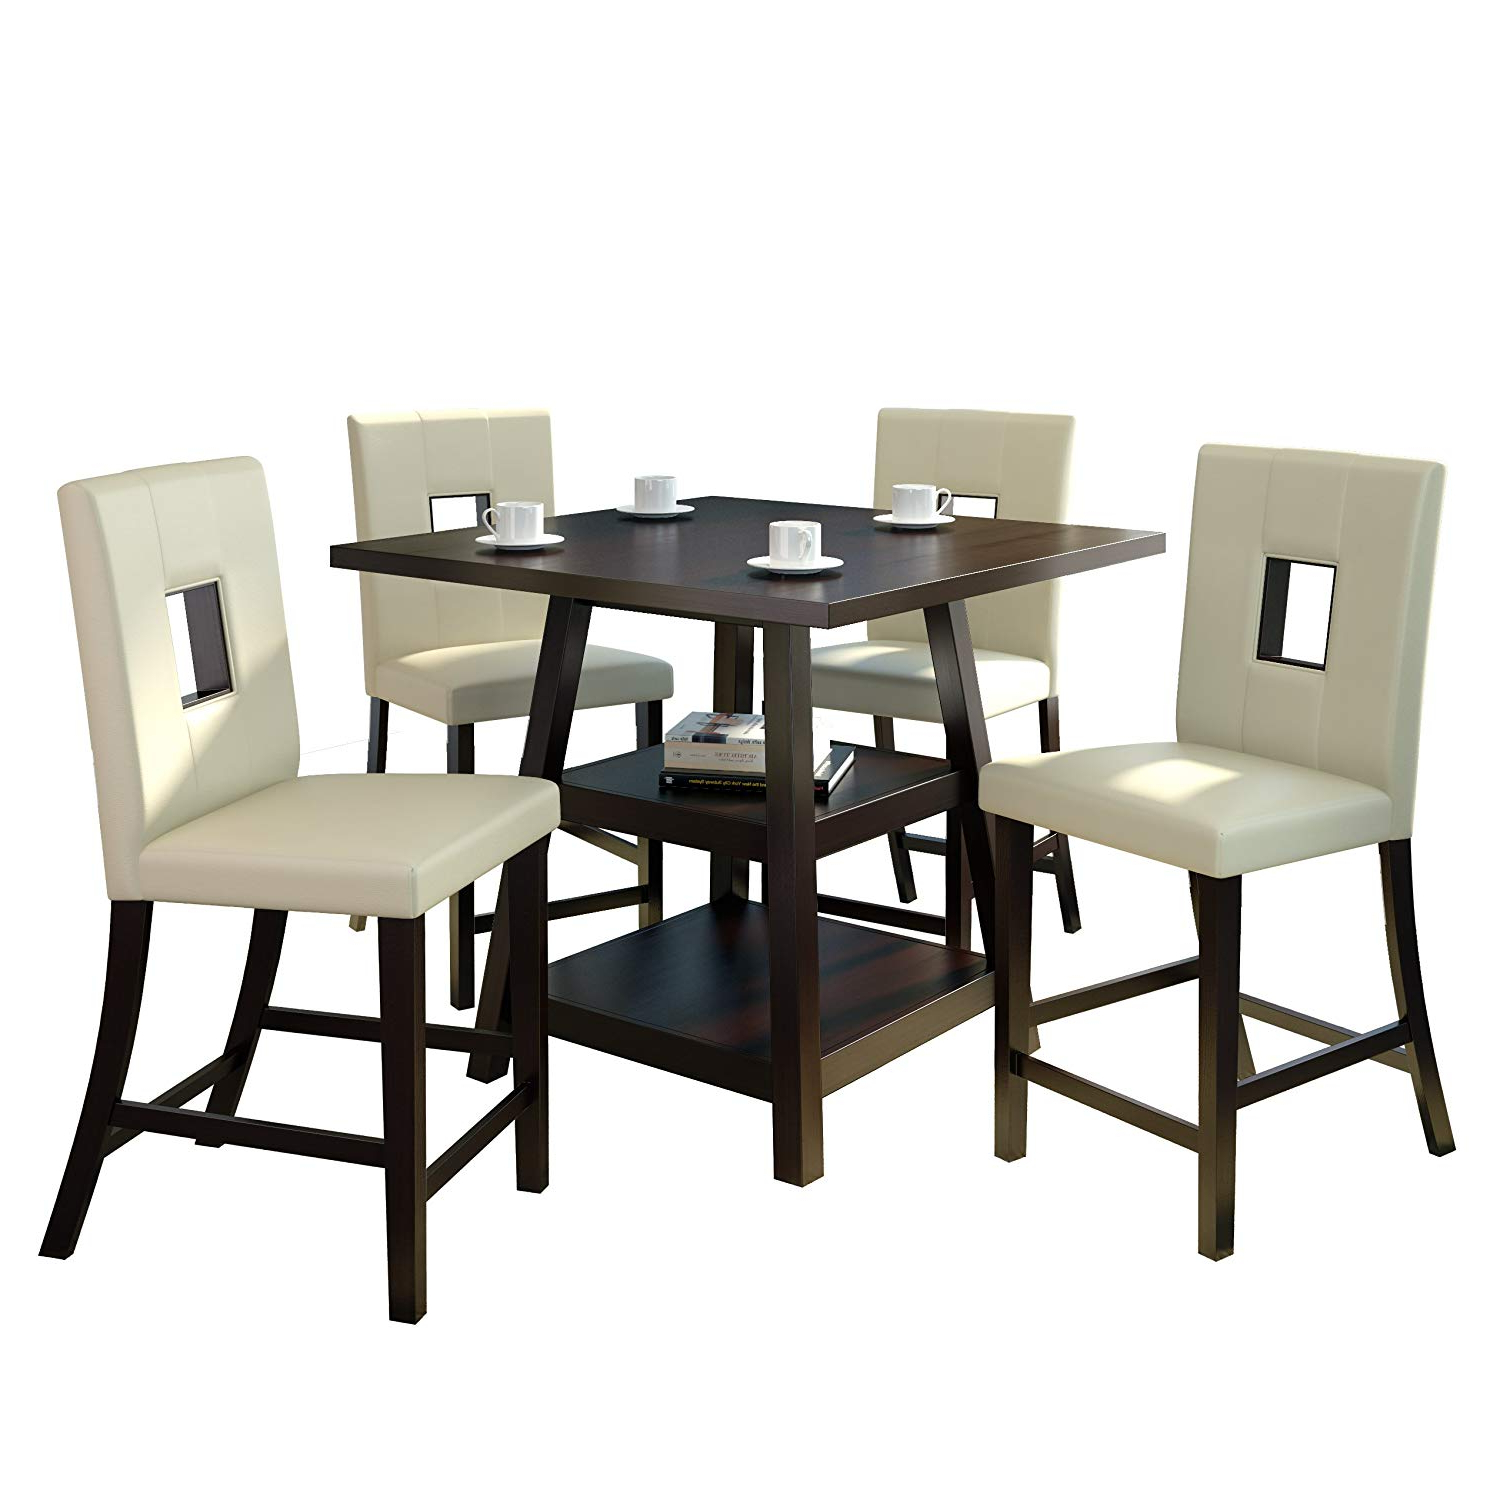 """Bistro Transitional 4 Seating Square Dining Tables Inside Current Corliving Bistro Dining Set, 36"""", Cappuccino/white (View 9 of 30)"""